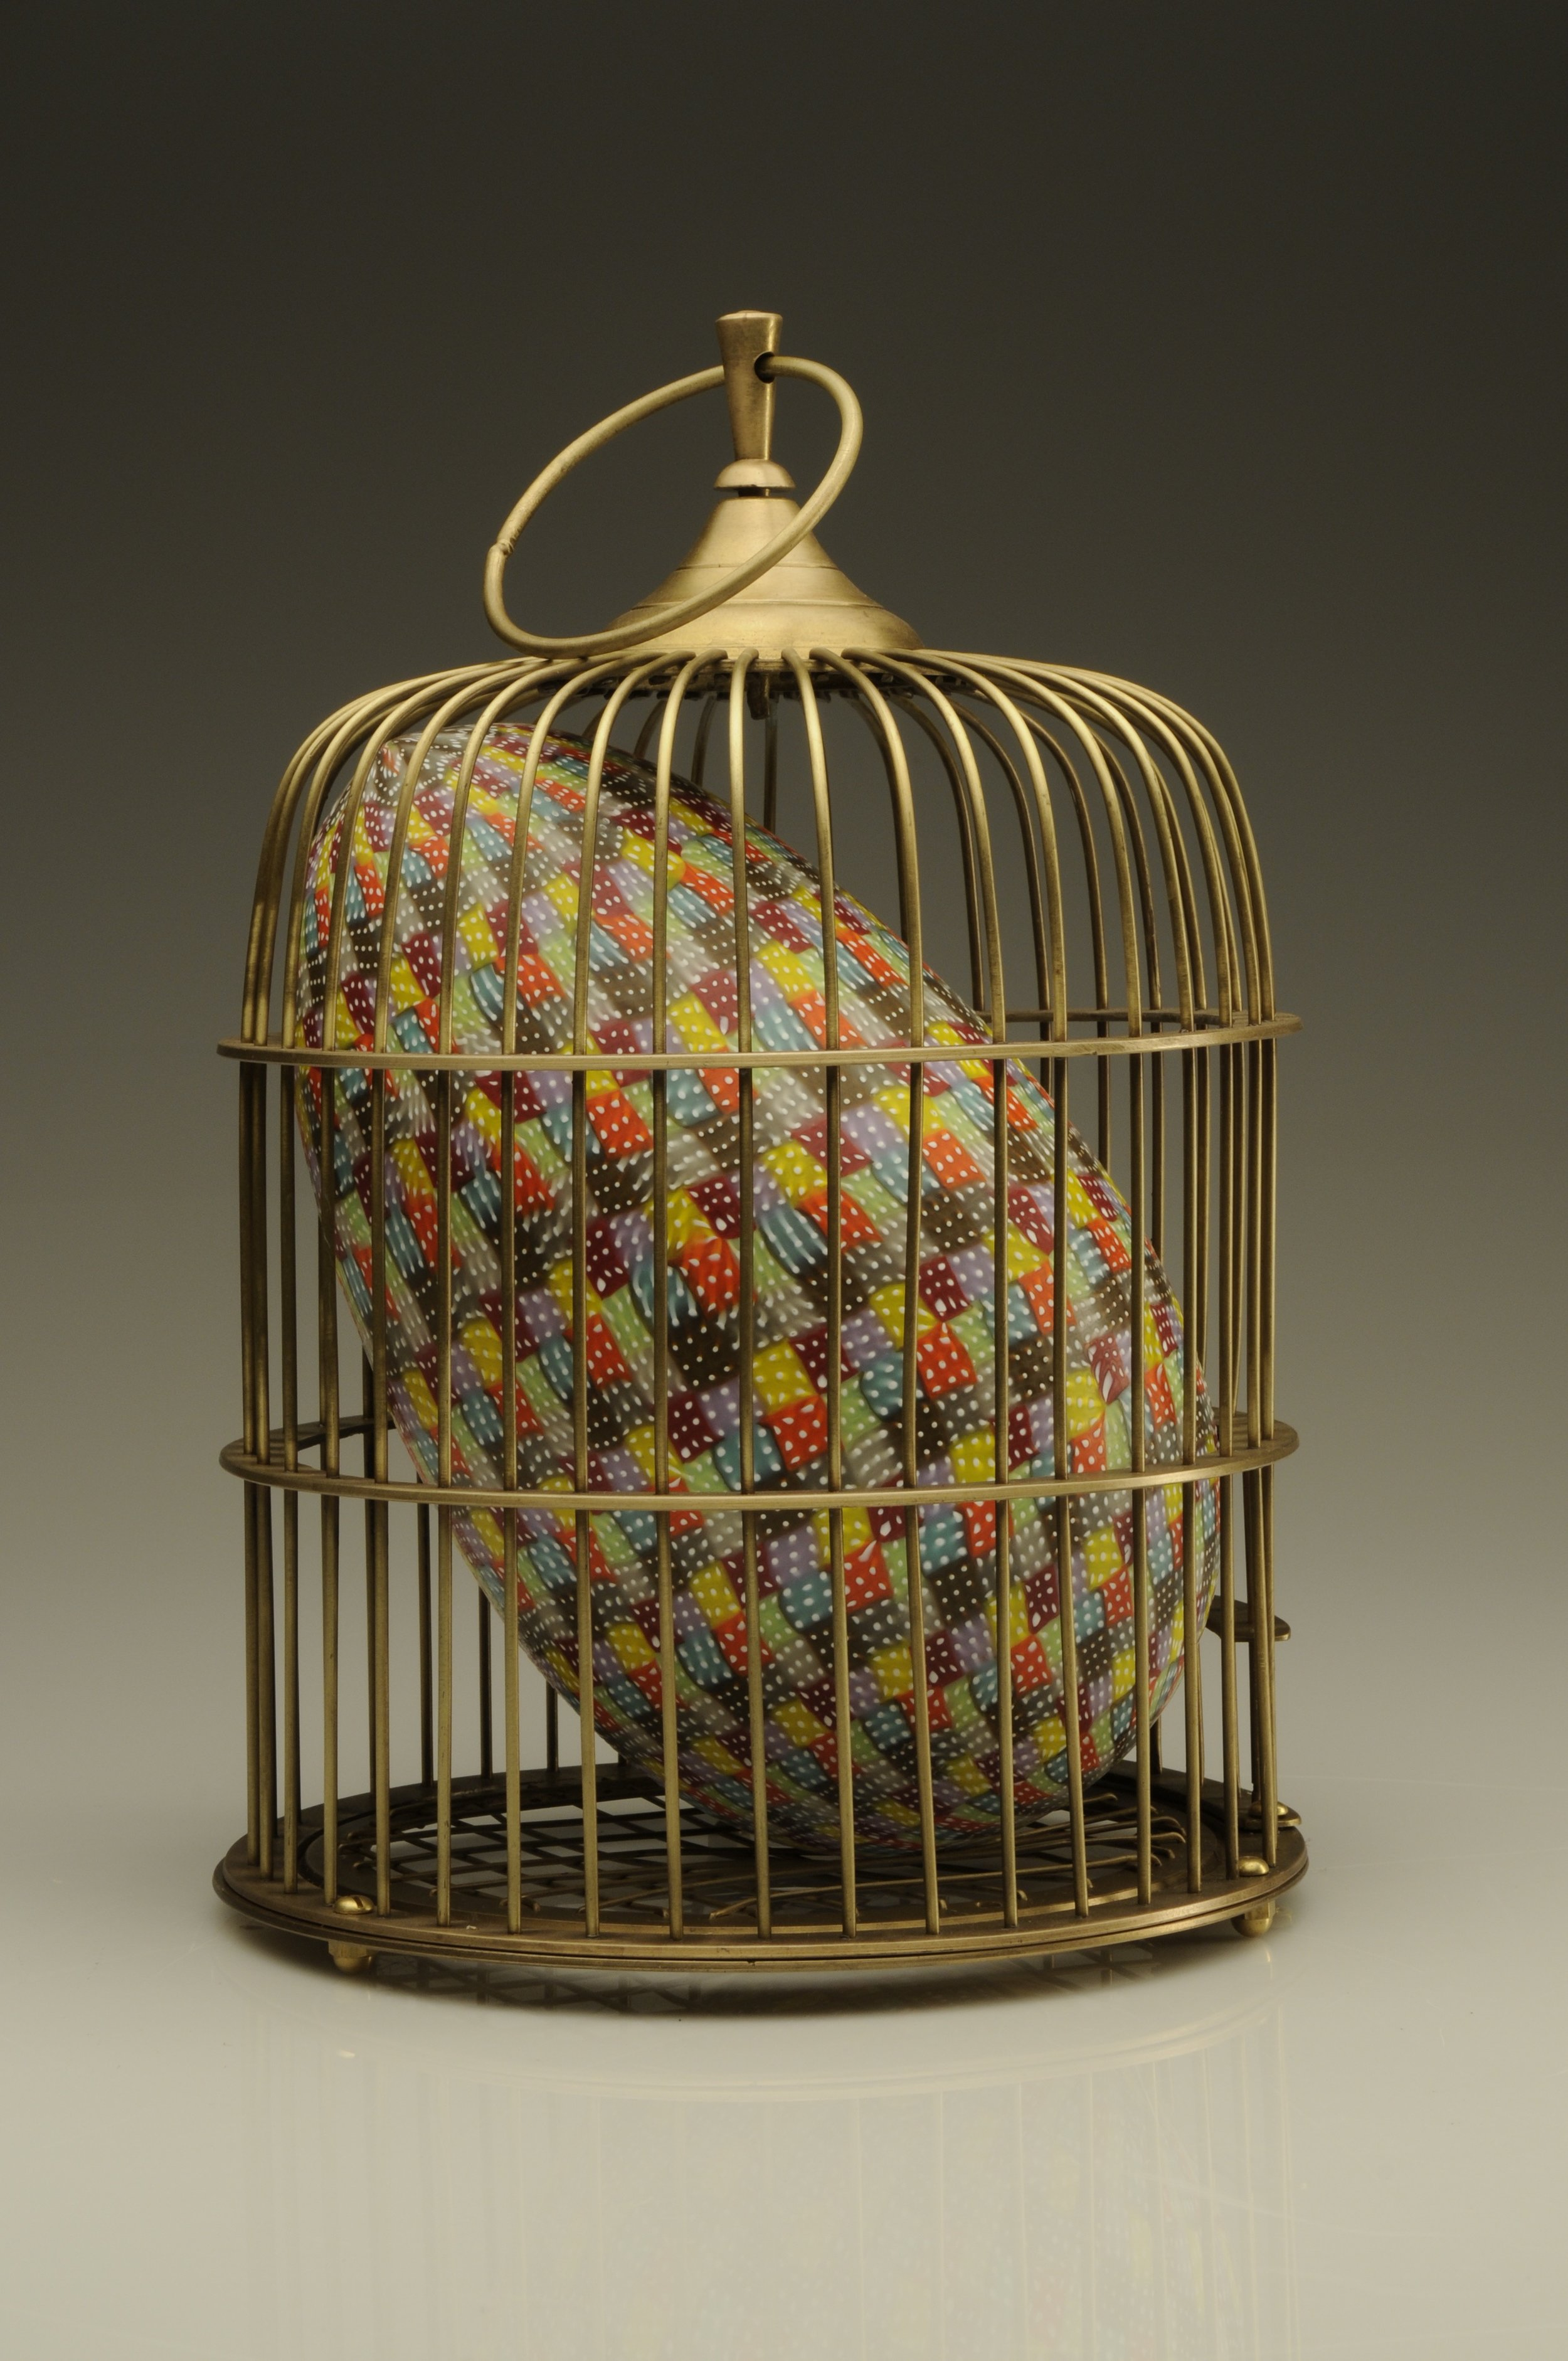 Egg in Cage